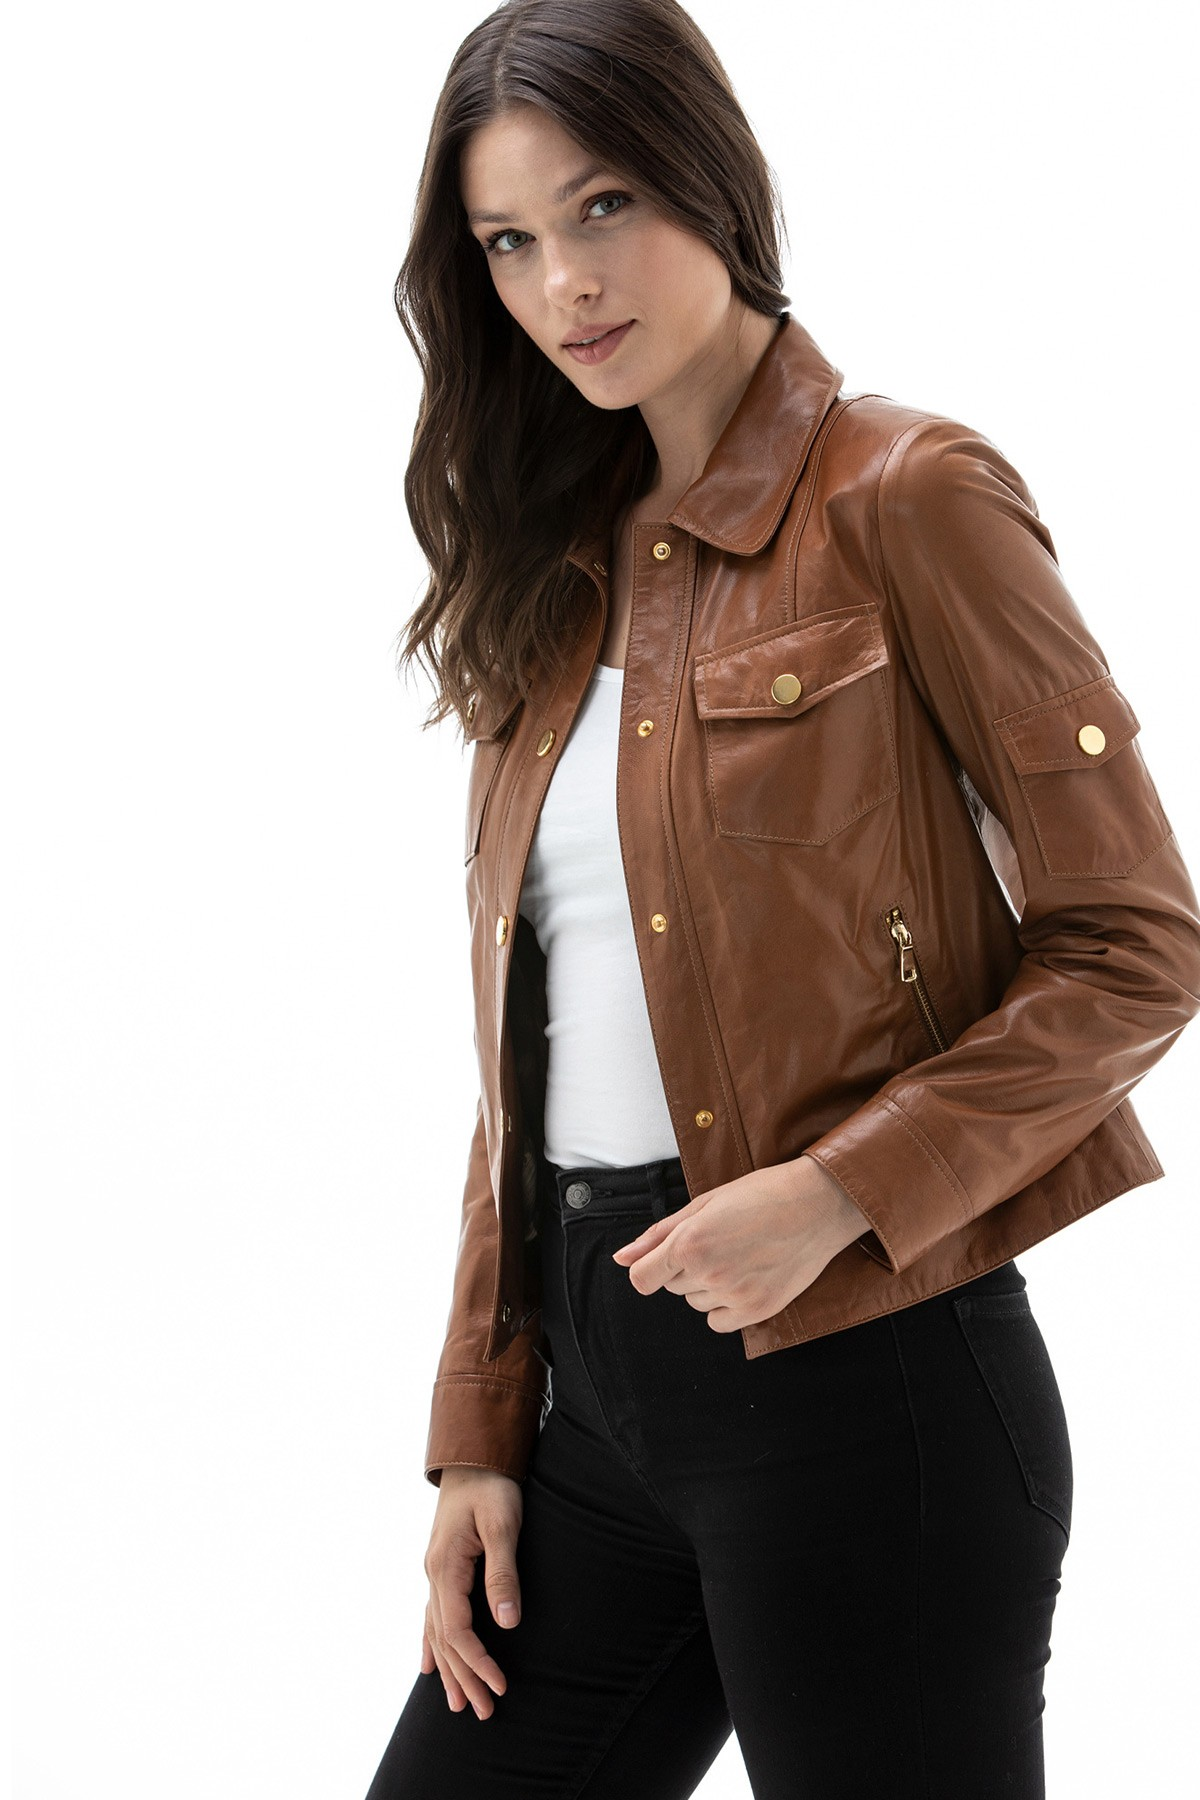 Dunhill Brown Leather Jacket